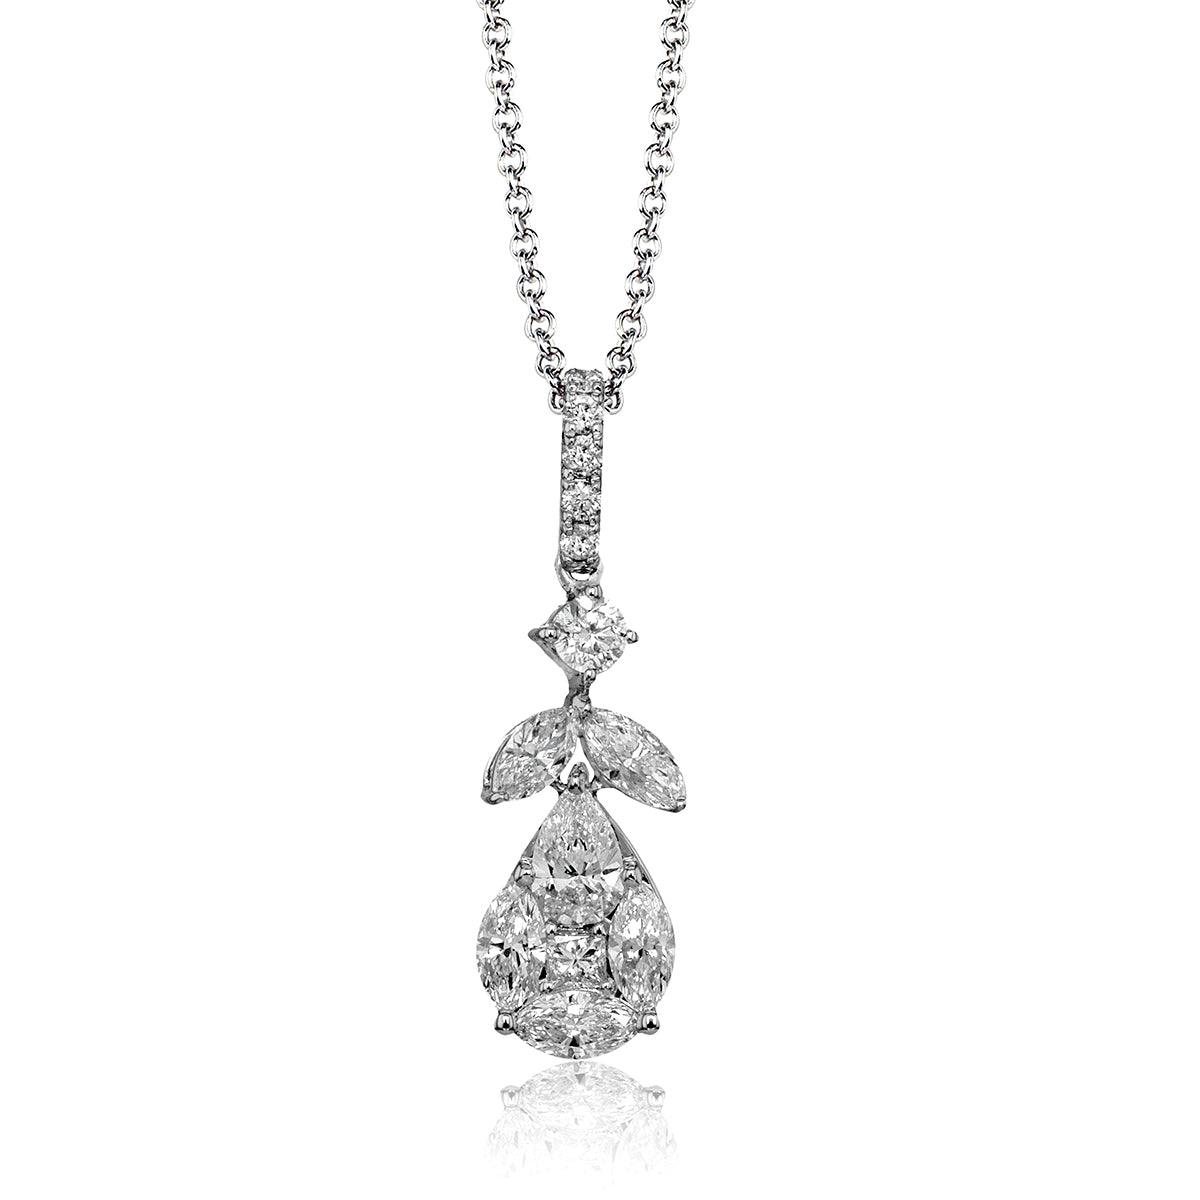 Simon G 18K White Gold Pear Shaped Pendant with Multi Diamond Cluster